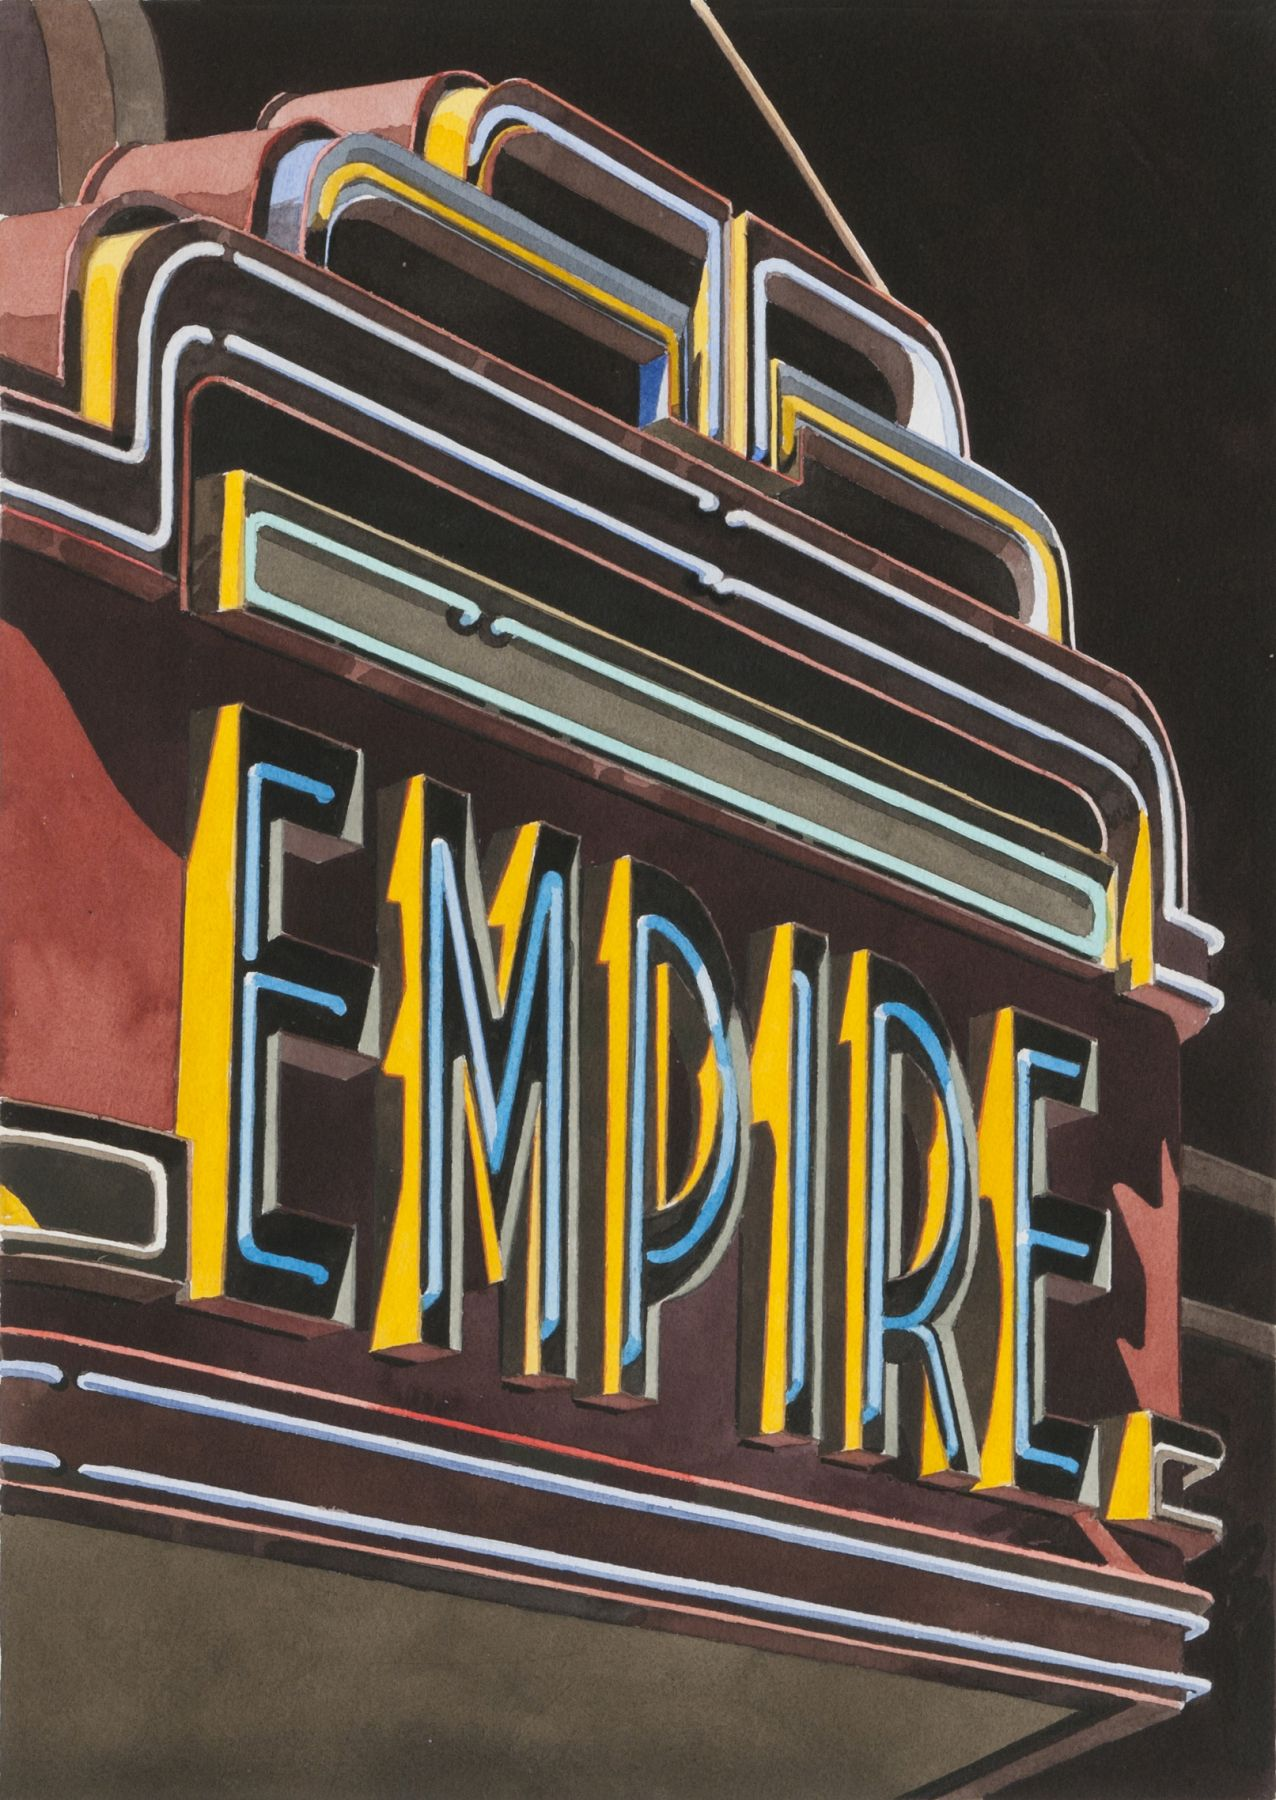 robert cottingham, Empire (SOLD), 2008, watercolor on paper, 18 7/8 x 13 1/2 inches